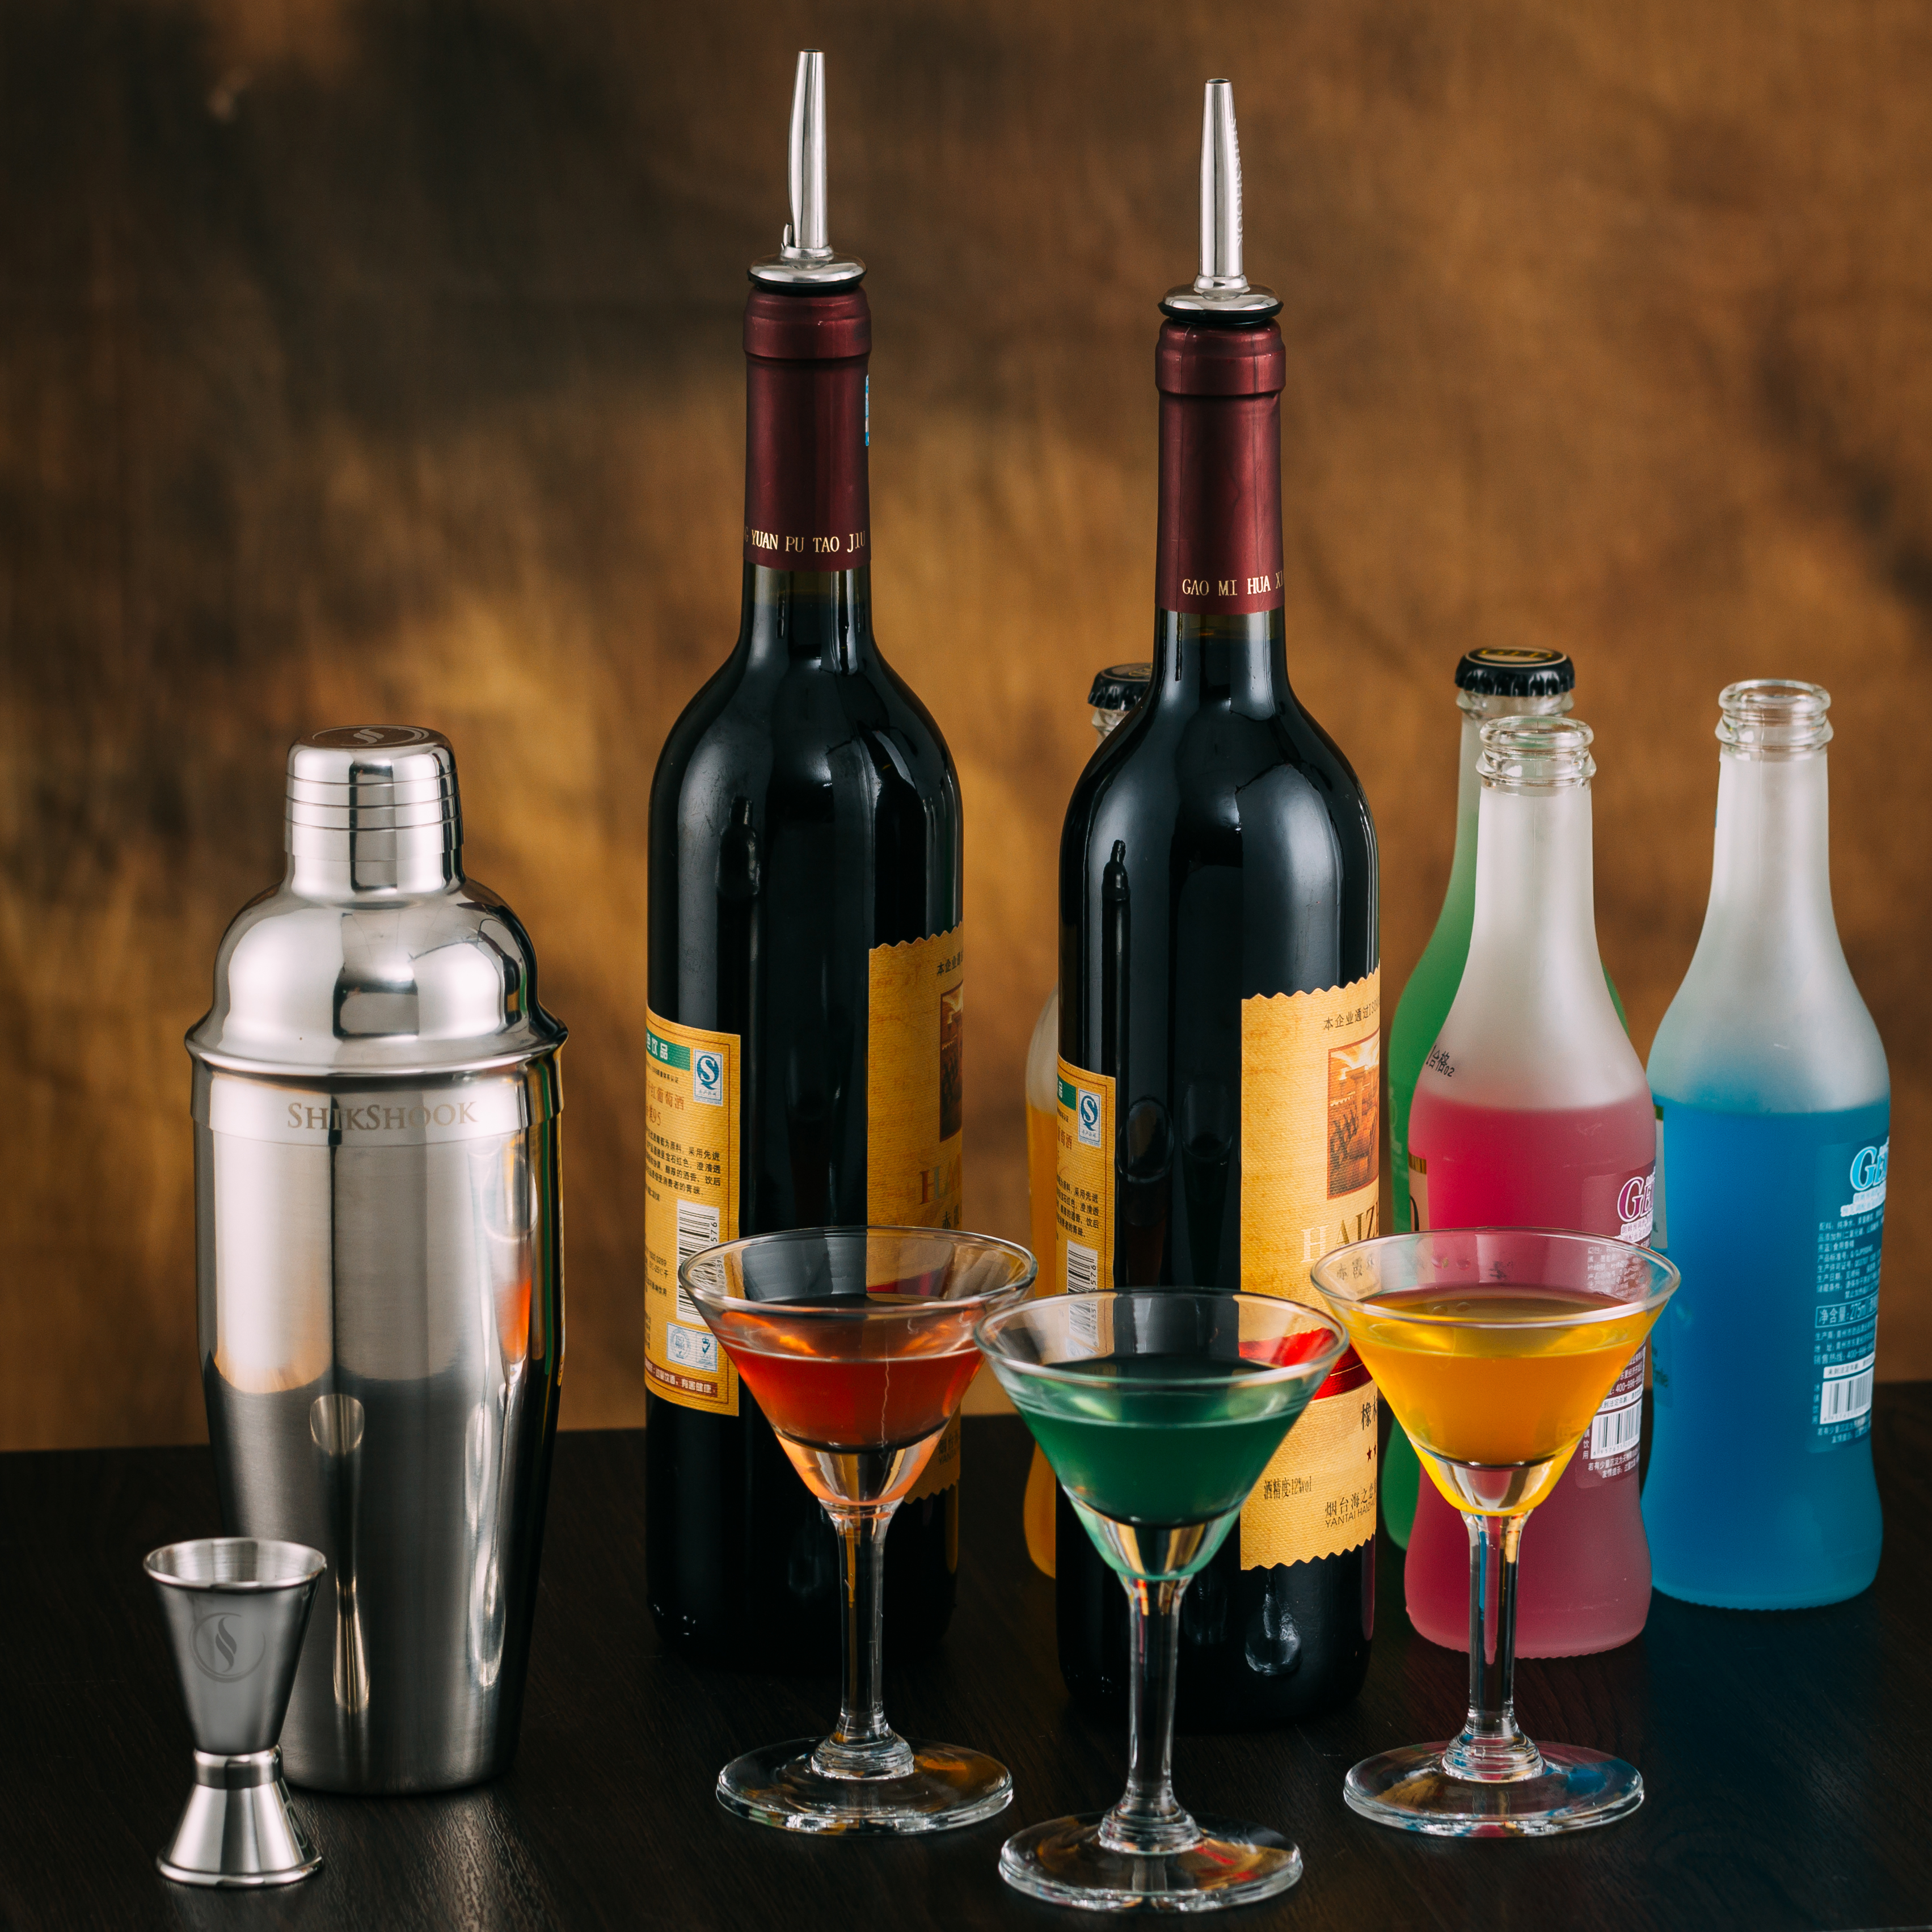 http://www.neliasproductreview.com/cocktail-shaker-set-luxury-bag-shikshook/